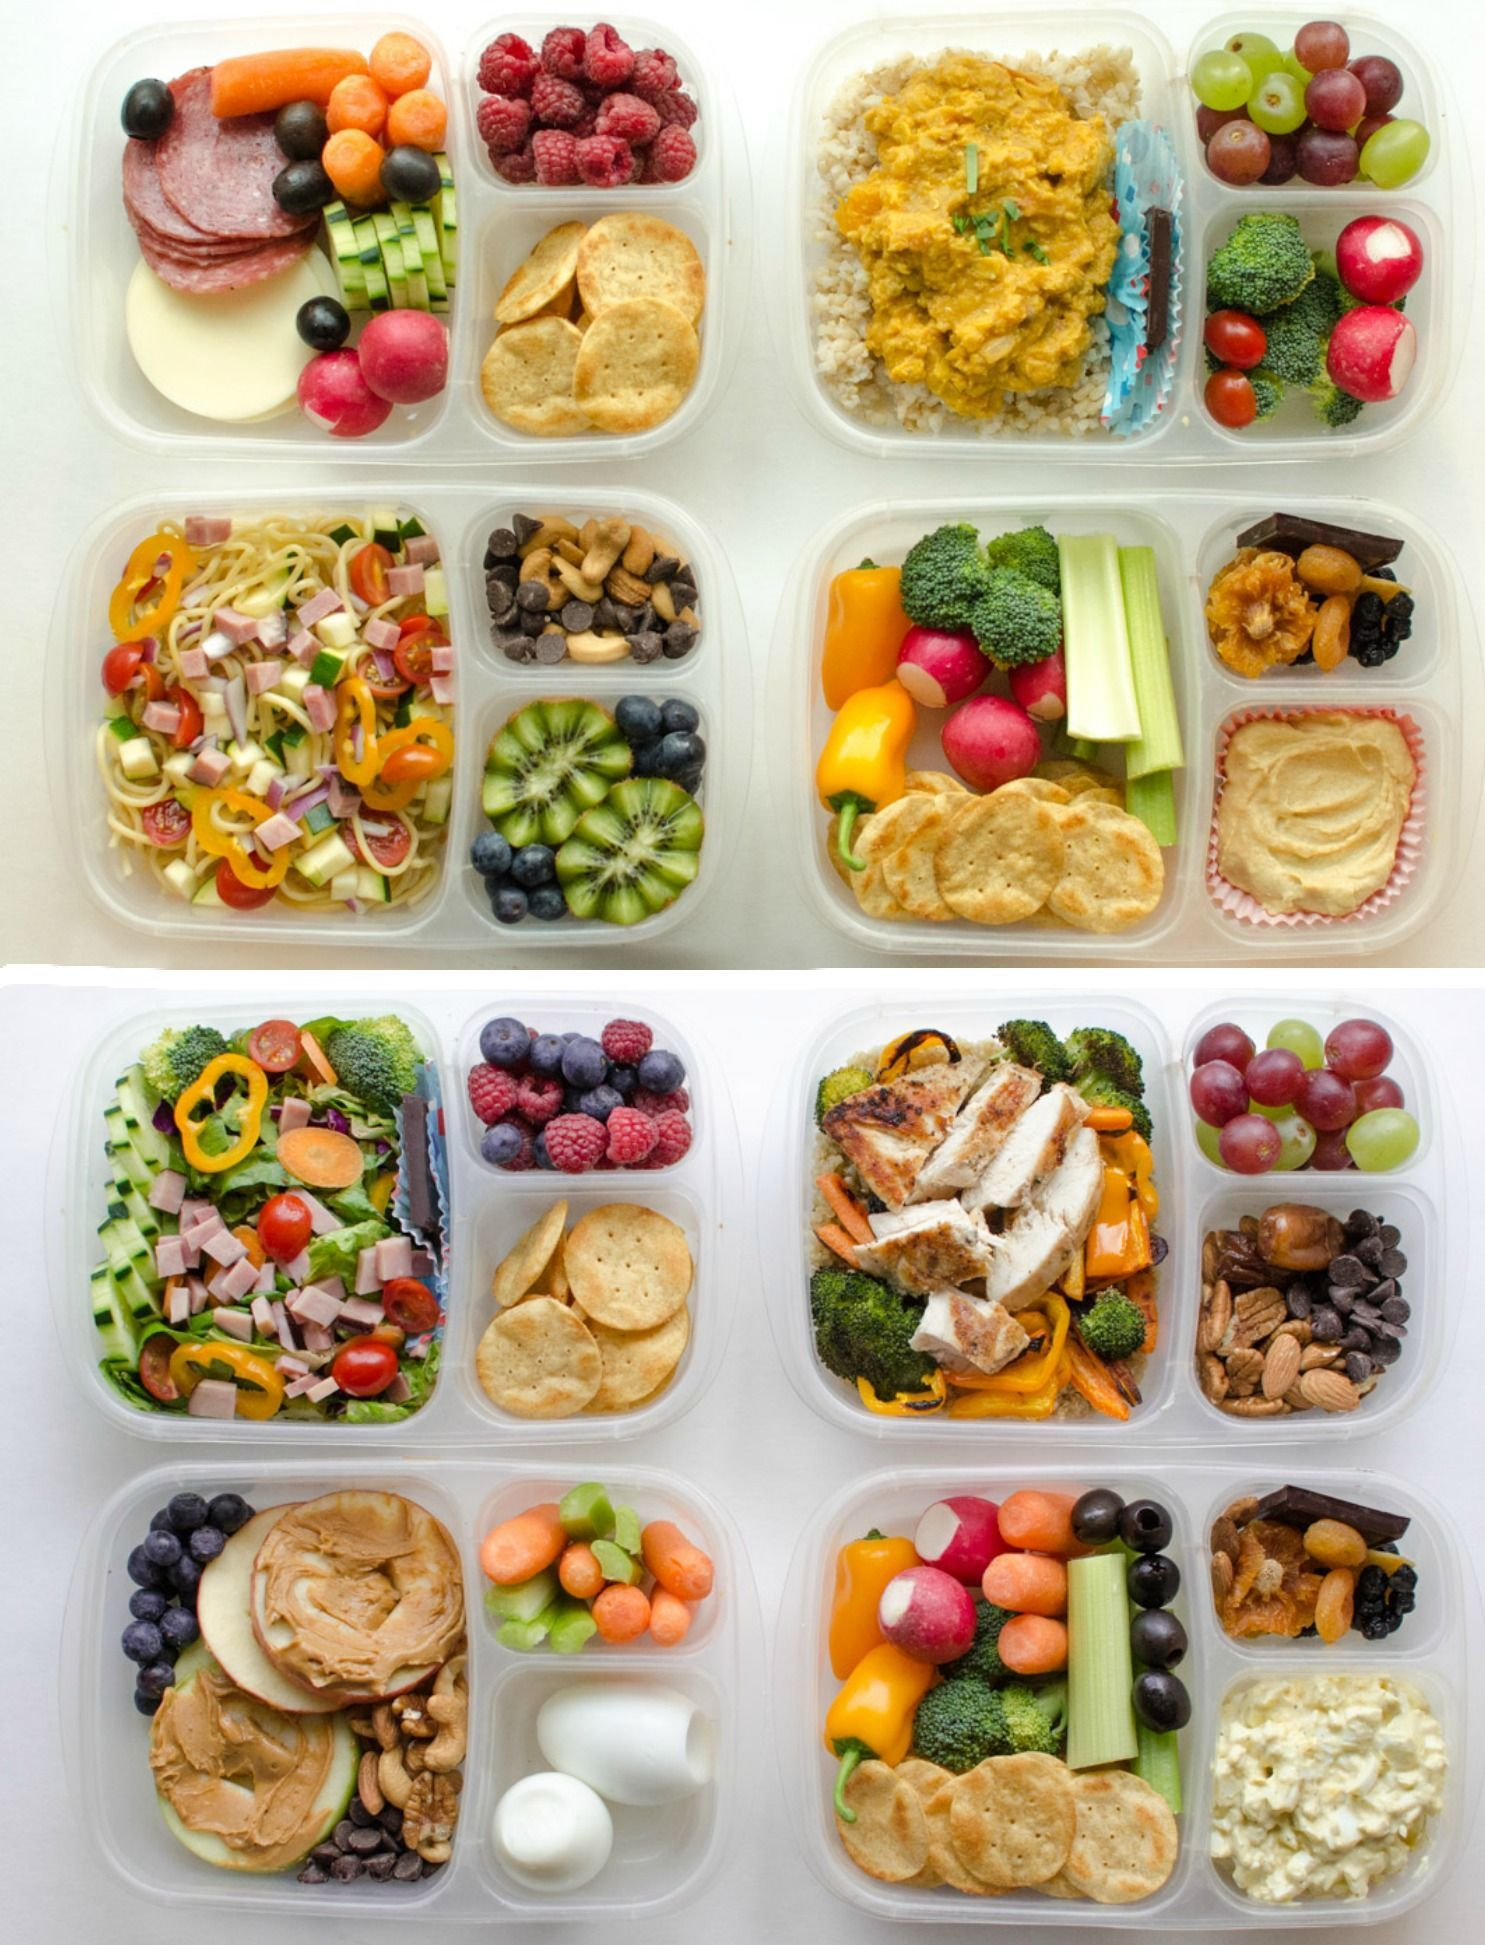 8 Wholesome Lunch-Box Ideas for Adults or Kids #ad #GOODTHiNS #fastrecipes